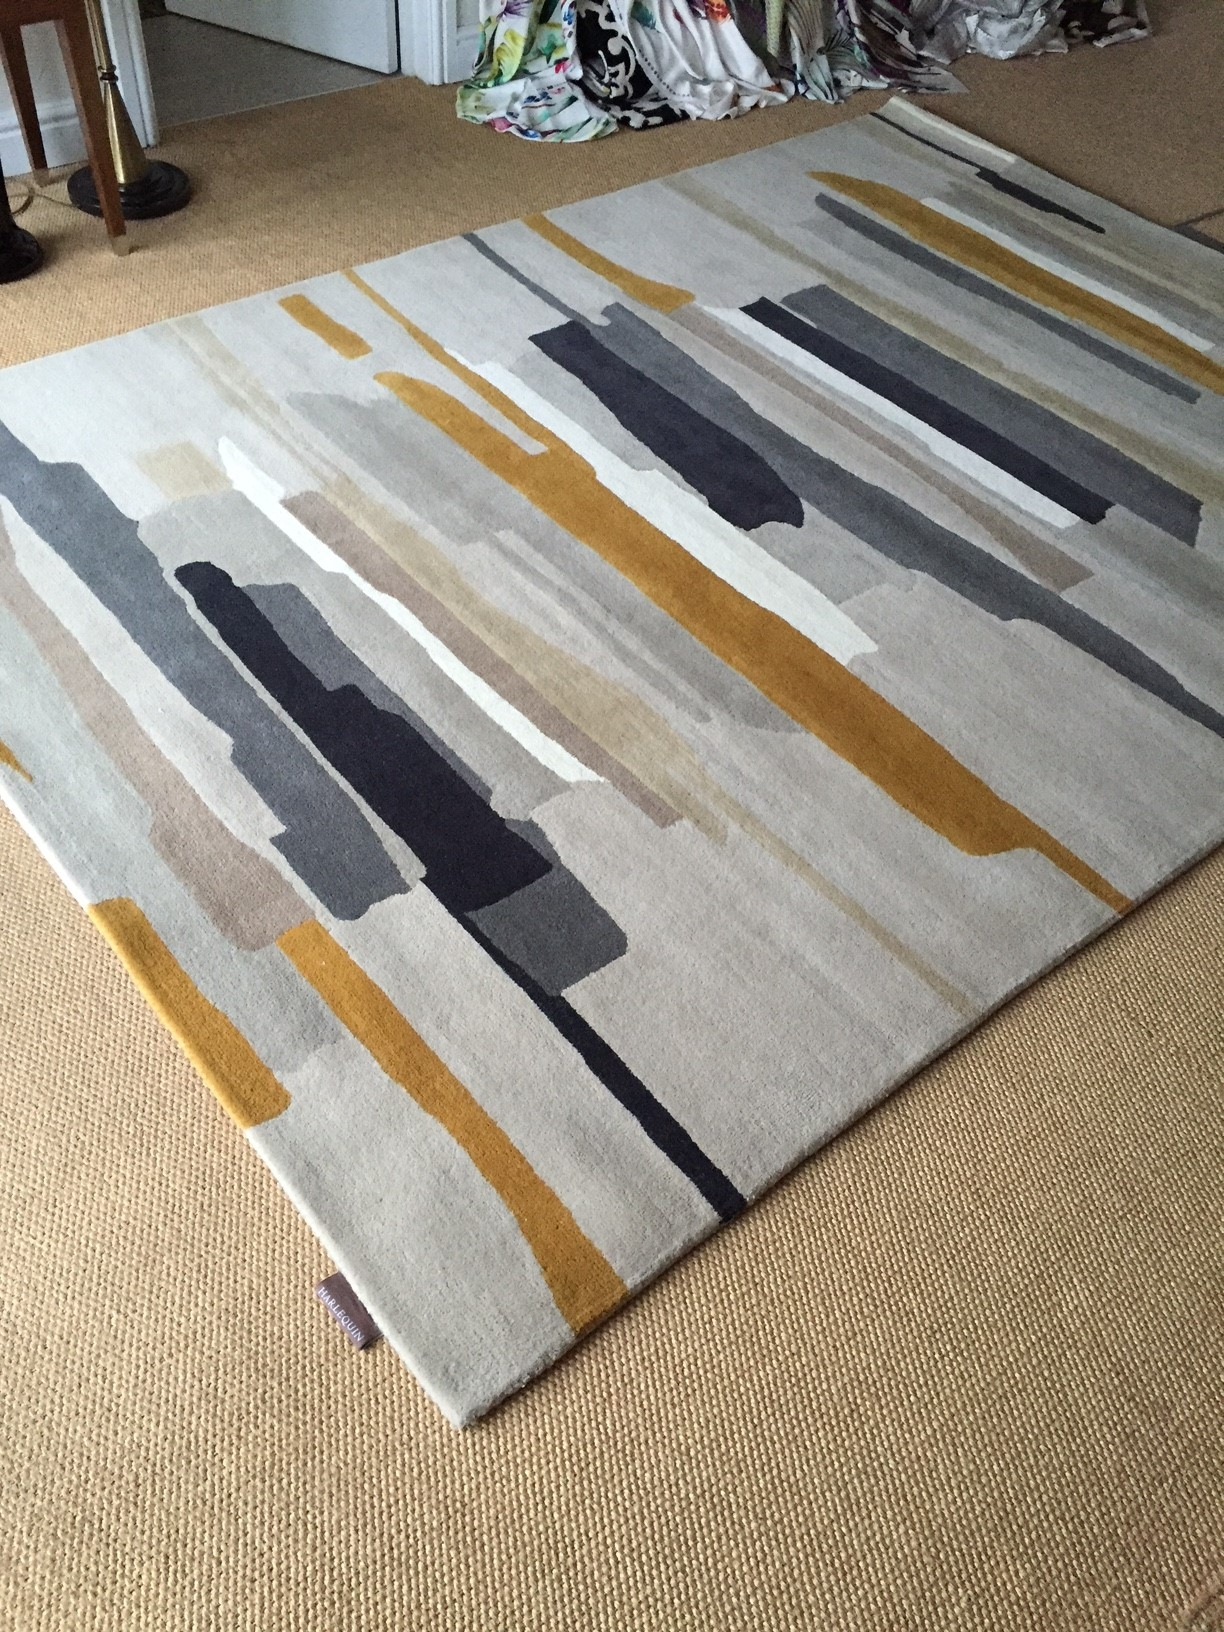 Harlequin Zeal Pewter Rug Produced Brink And Campman Rugs In Intended For Harlequin Rugs (Image 9 of 15)